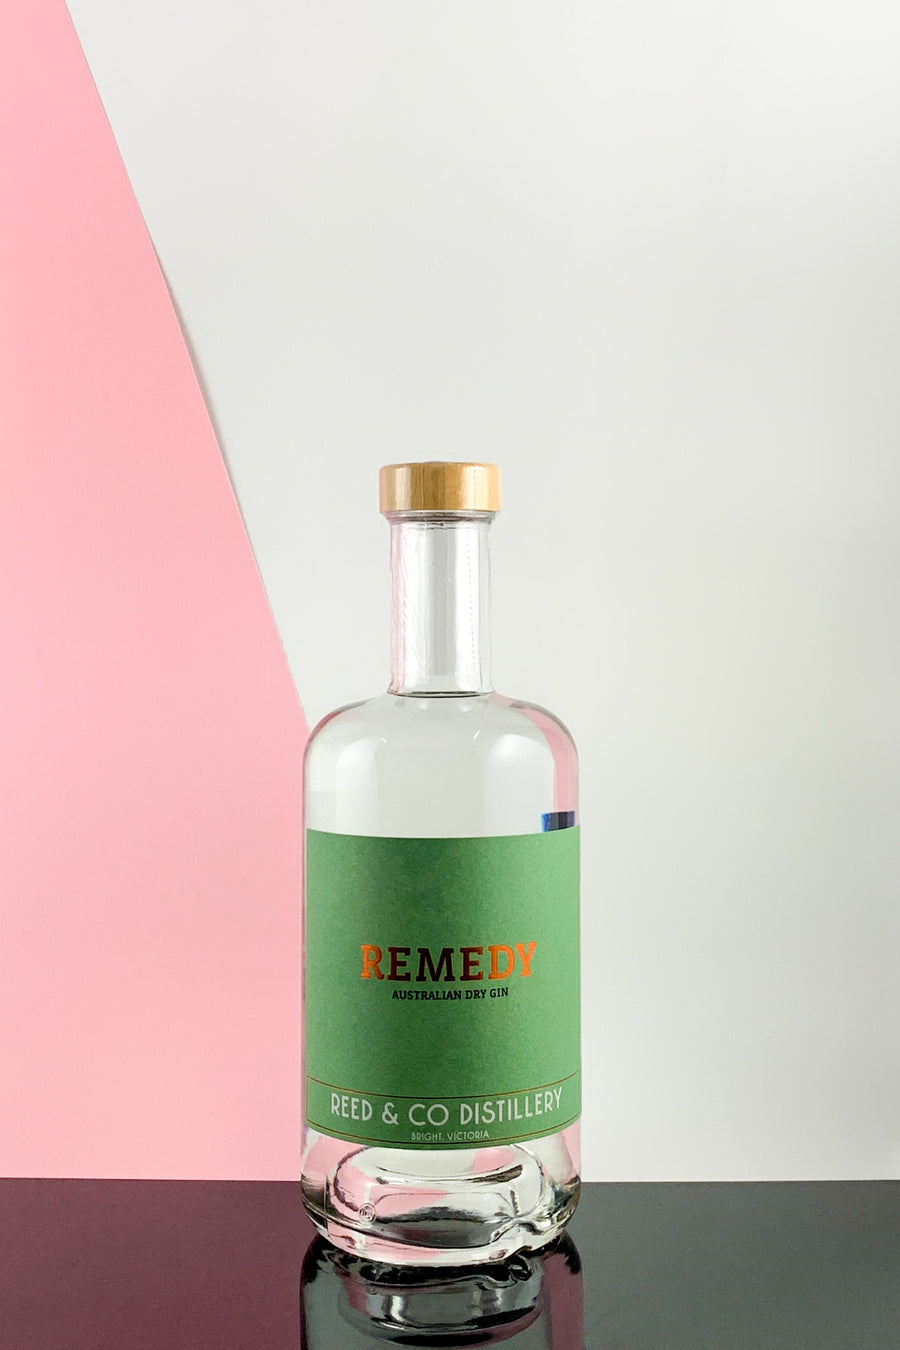 Reed & Co Distilling Remedy Gin